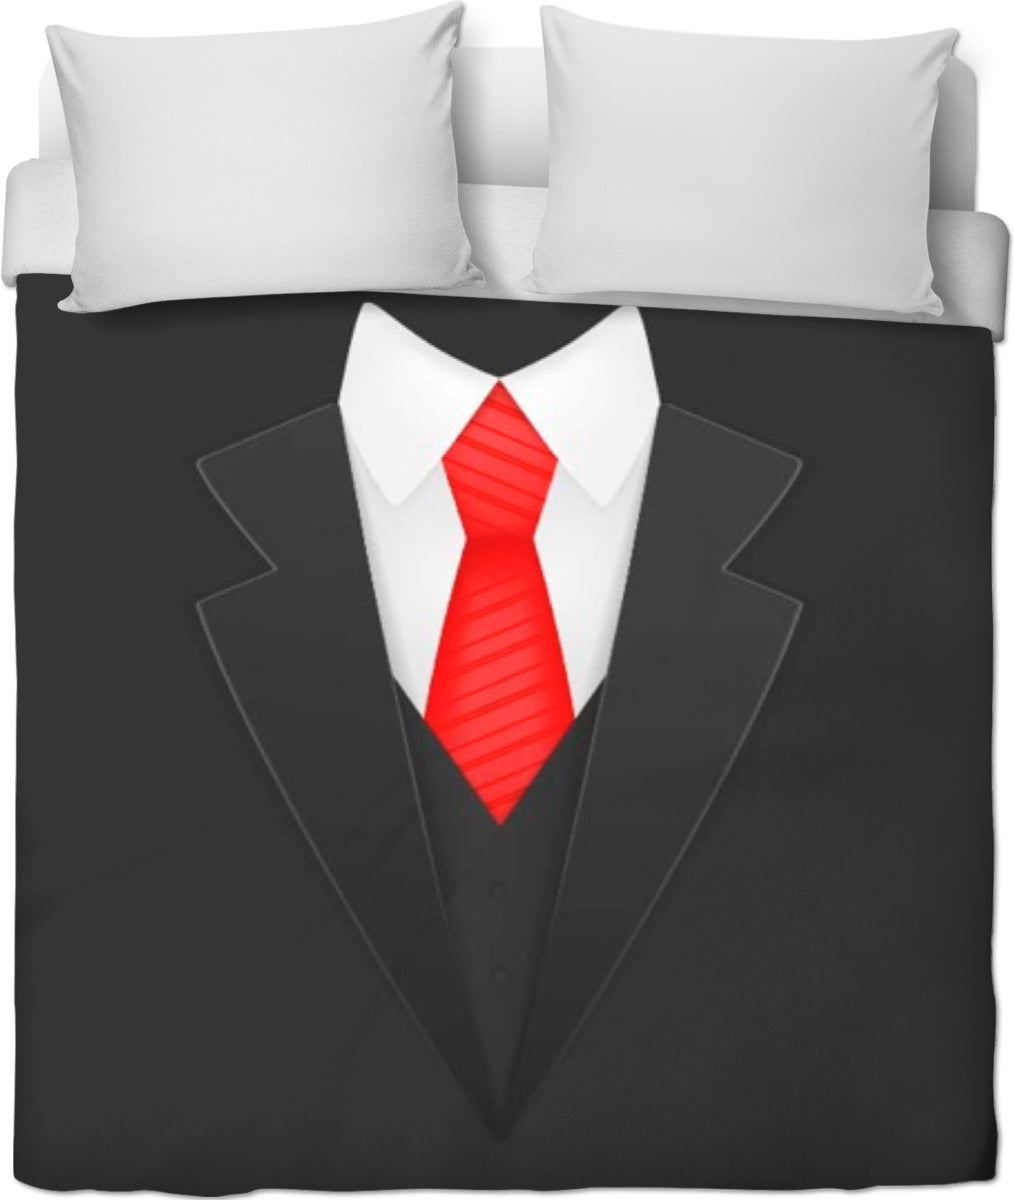 Suit And Tie Duvet Cover